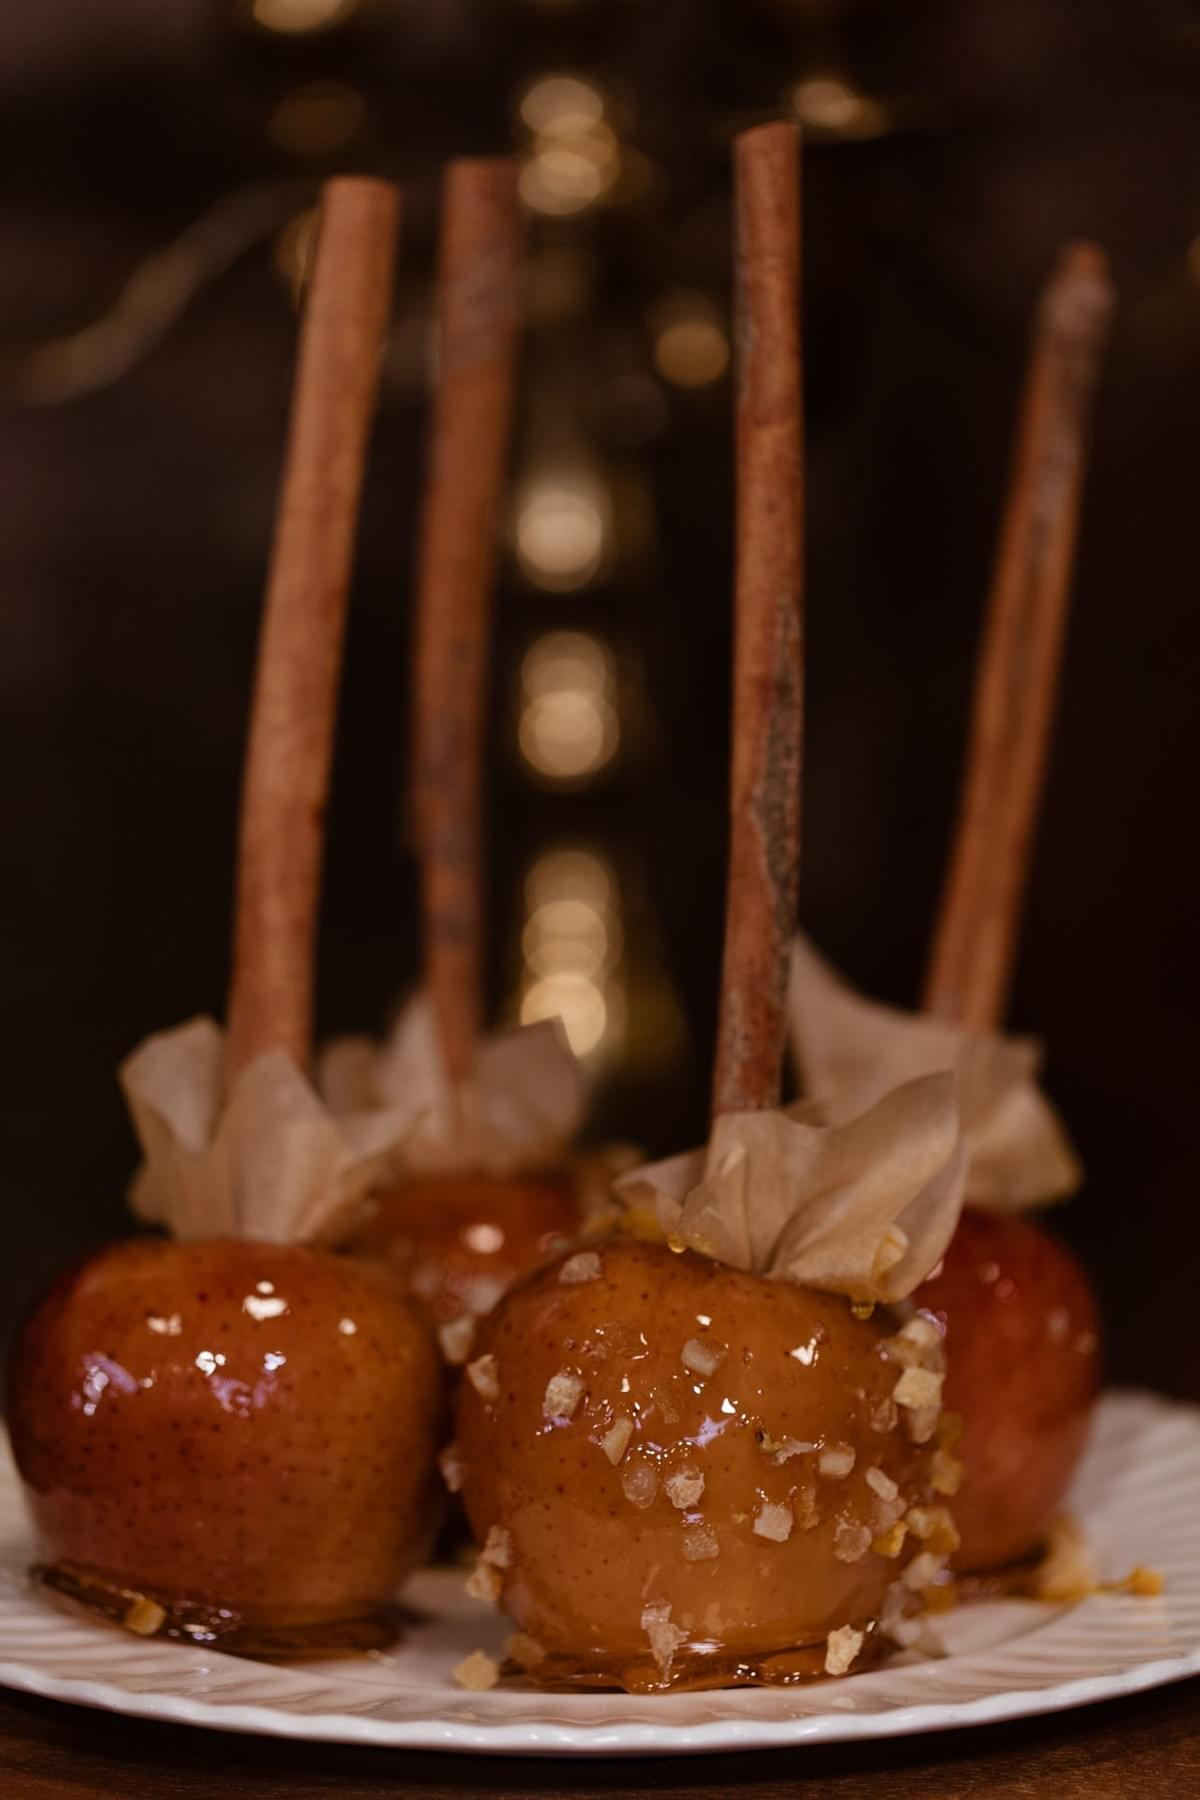 Autumn toffee apples, cinnamon sticks